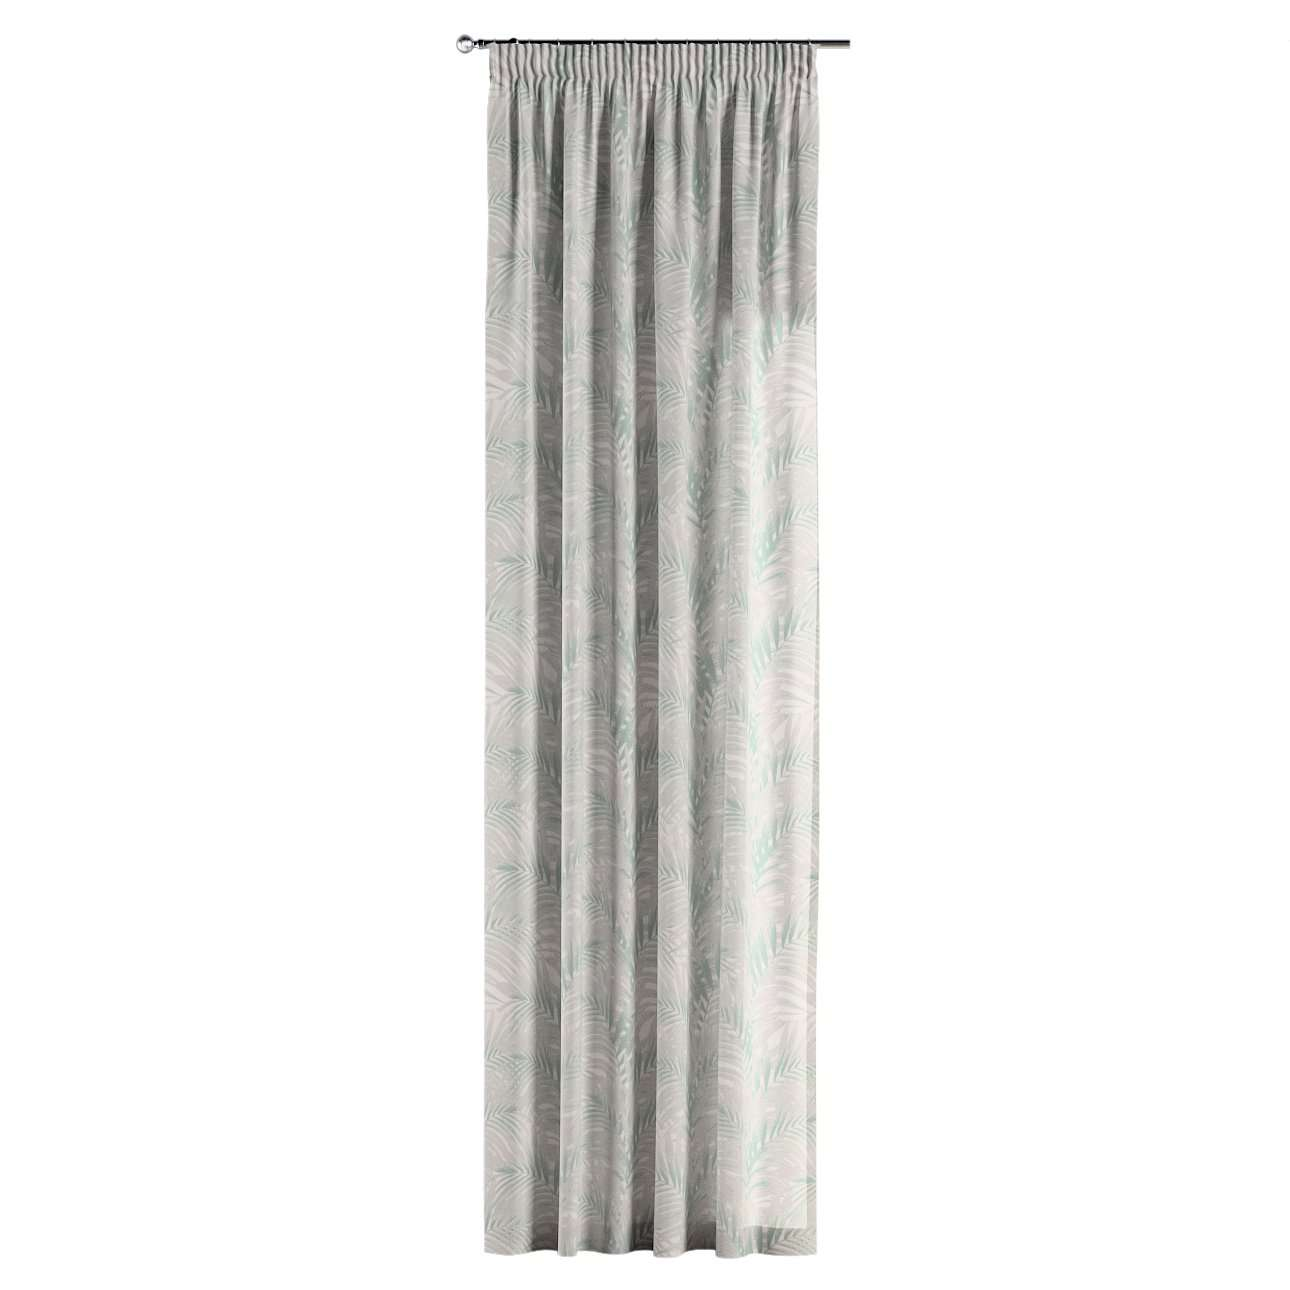 Pencil pleat curtains in collection Gardenia, fabric: 142-15